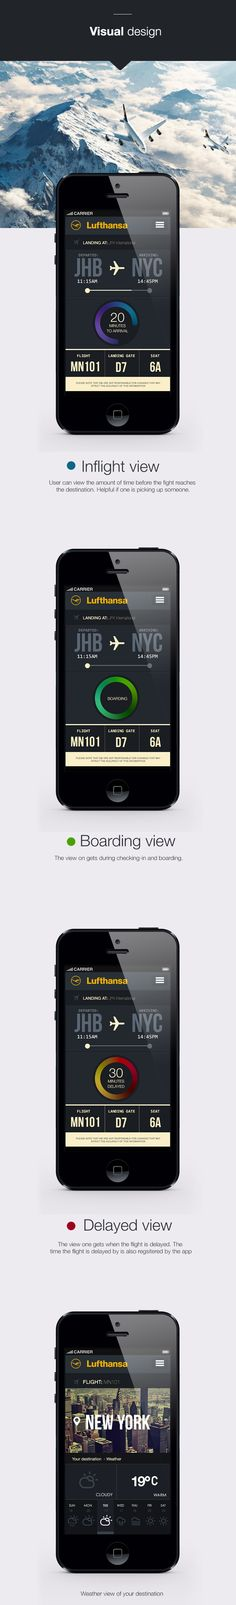 Lufthansa flight tracking #app #IOS7 on Behance #ui #visual #design #interface